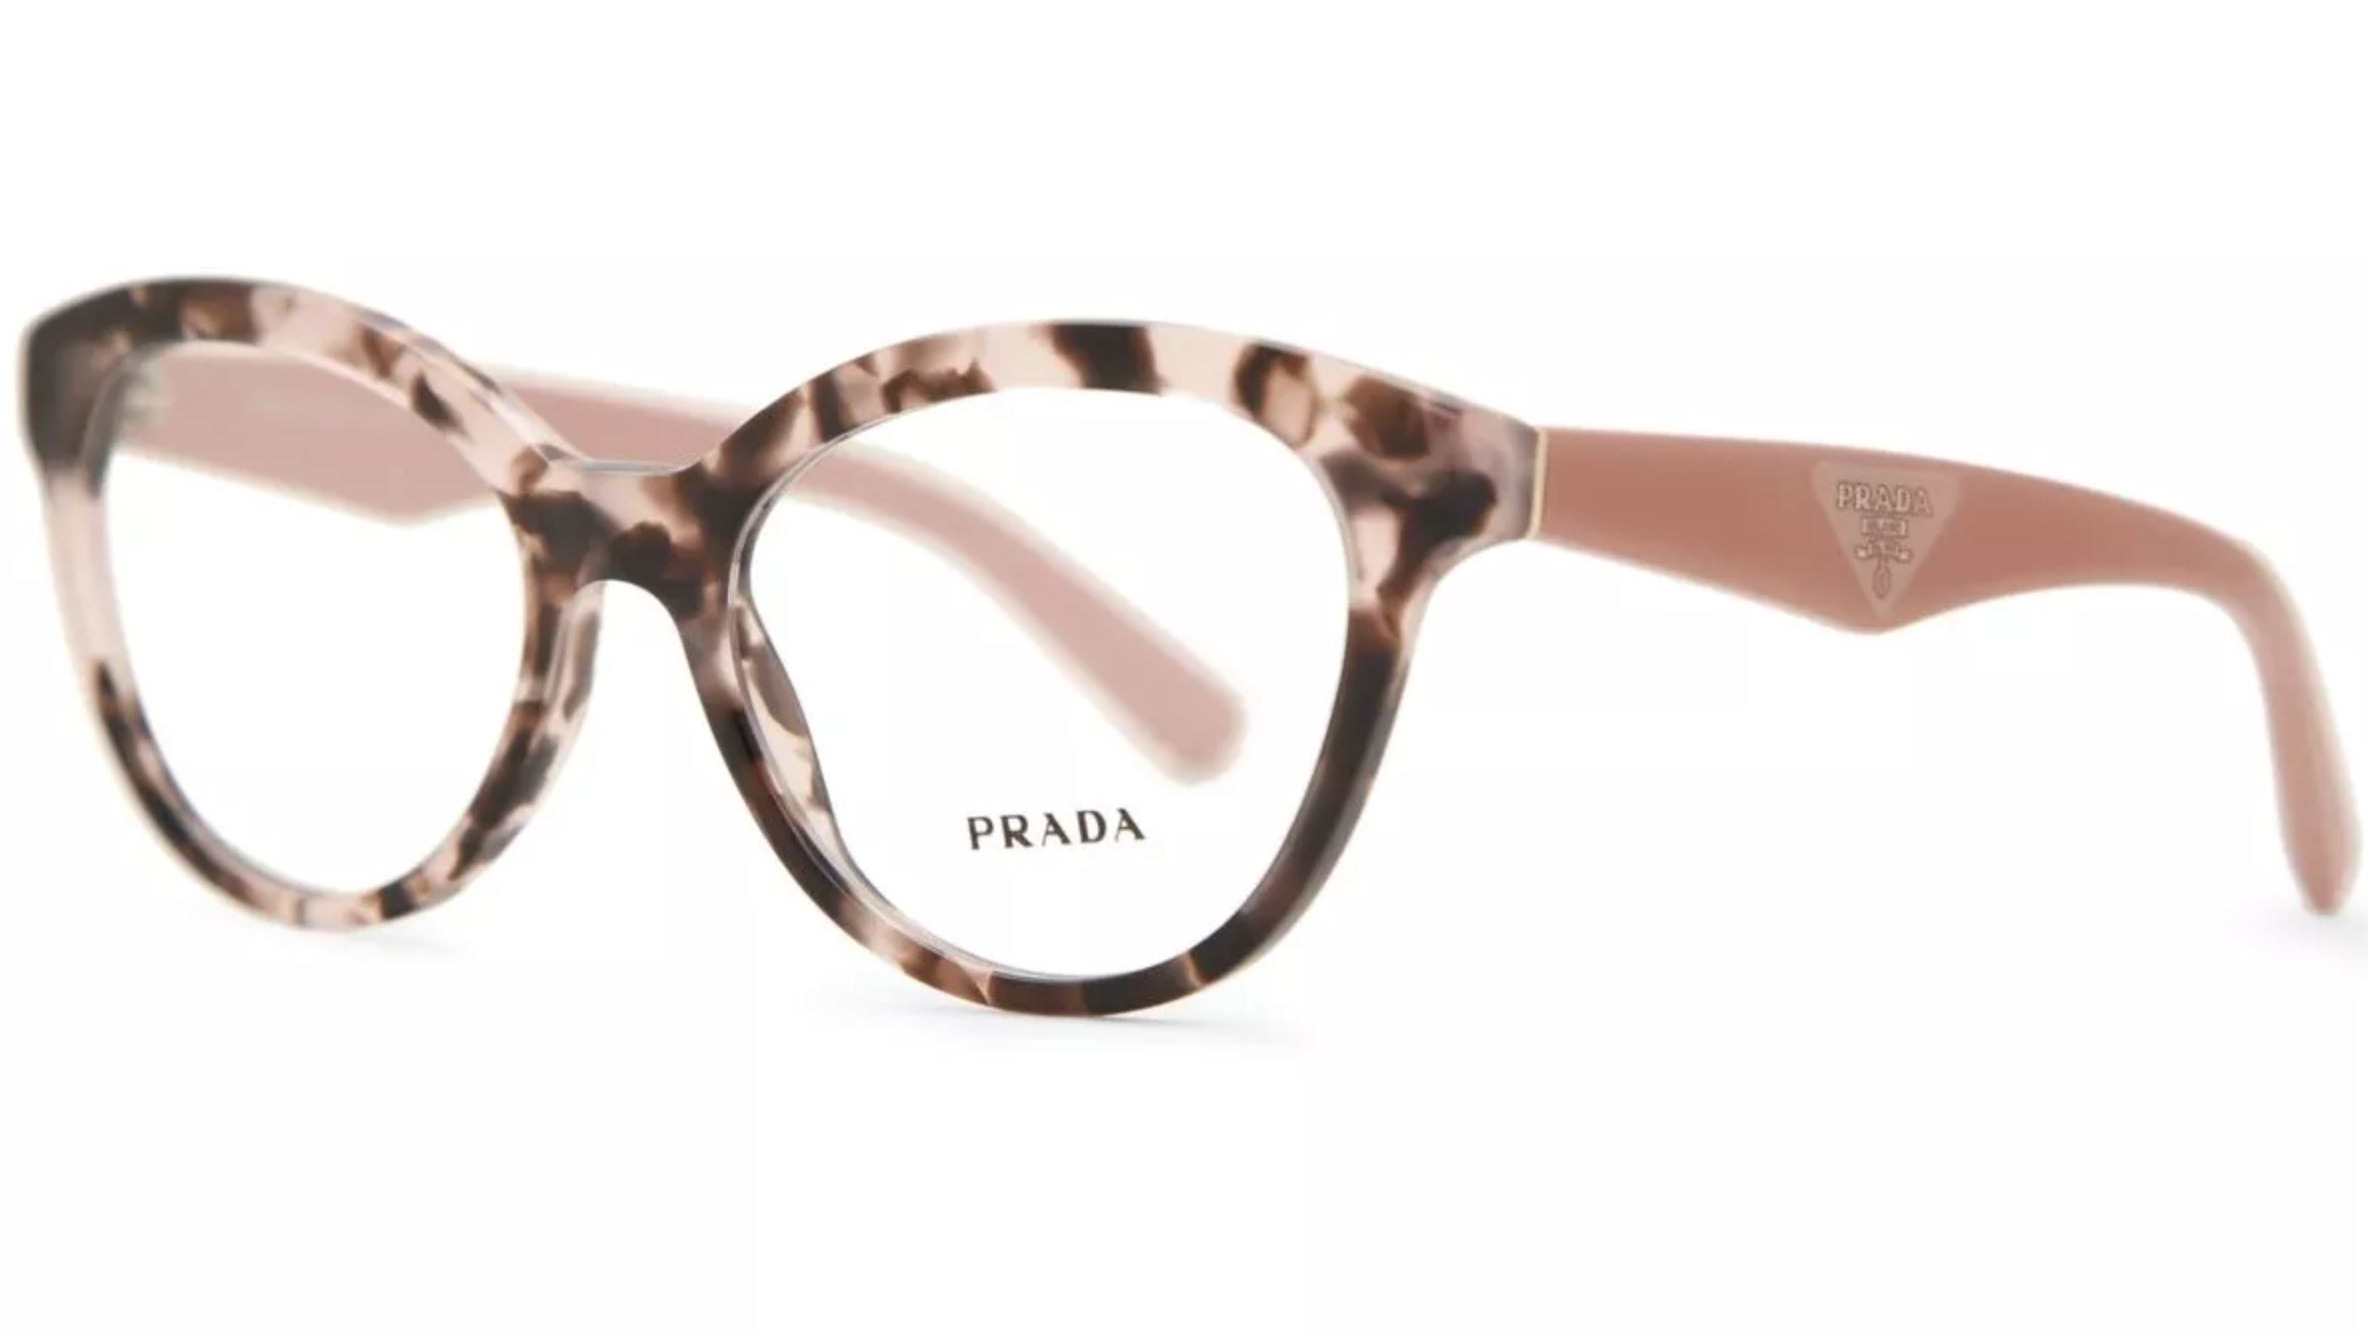 Prad Perscription Glasses